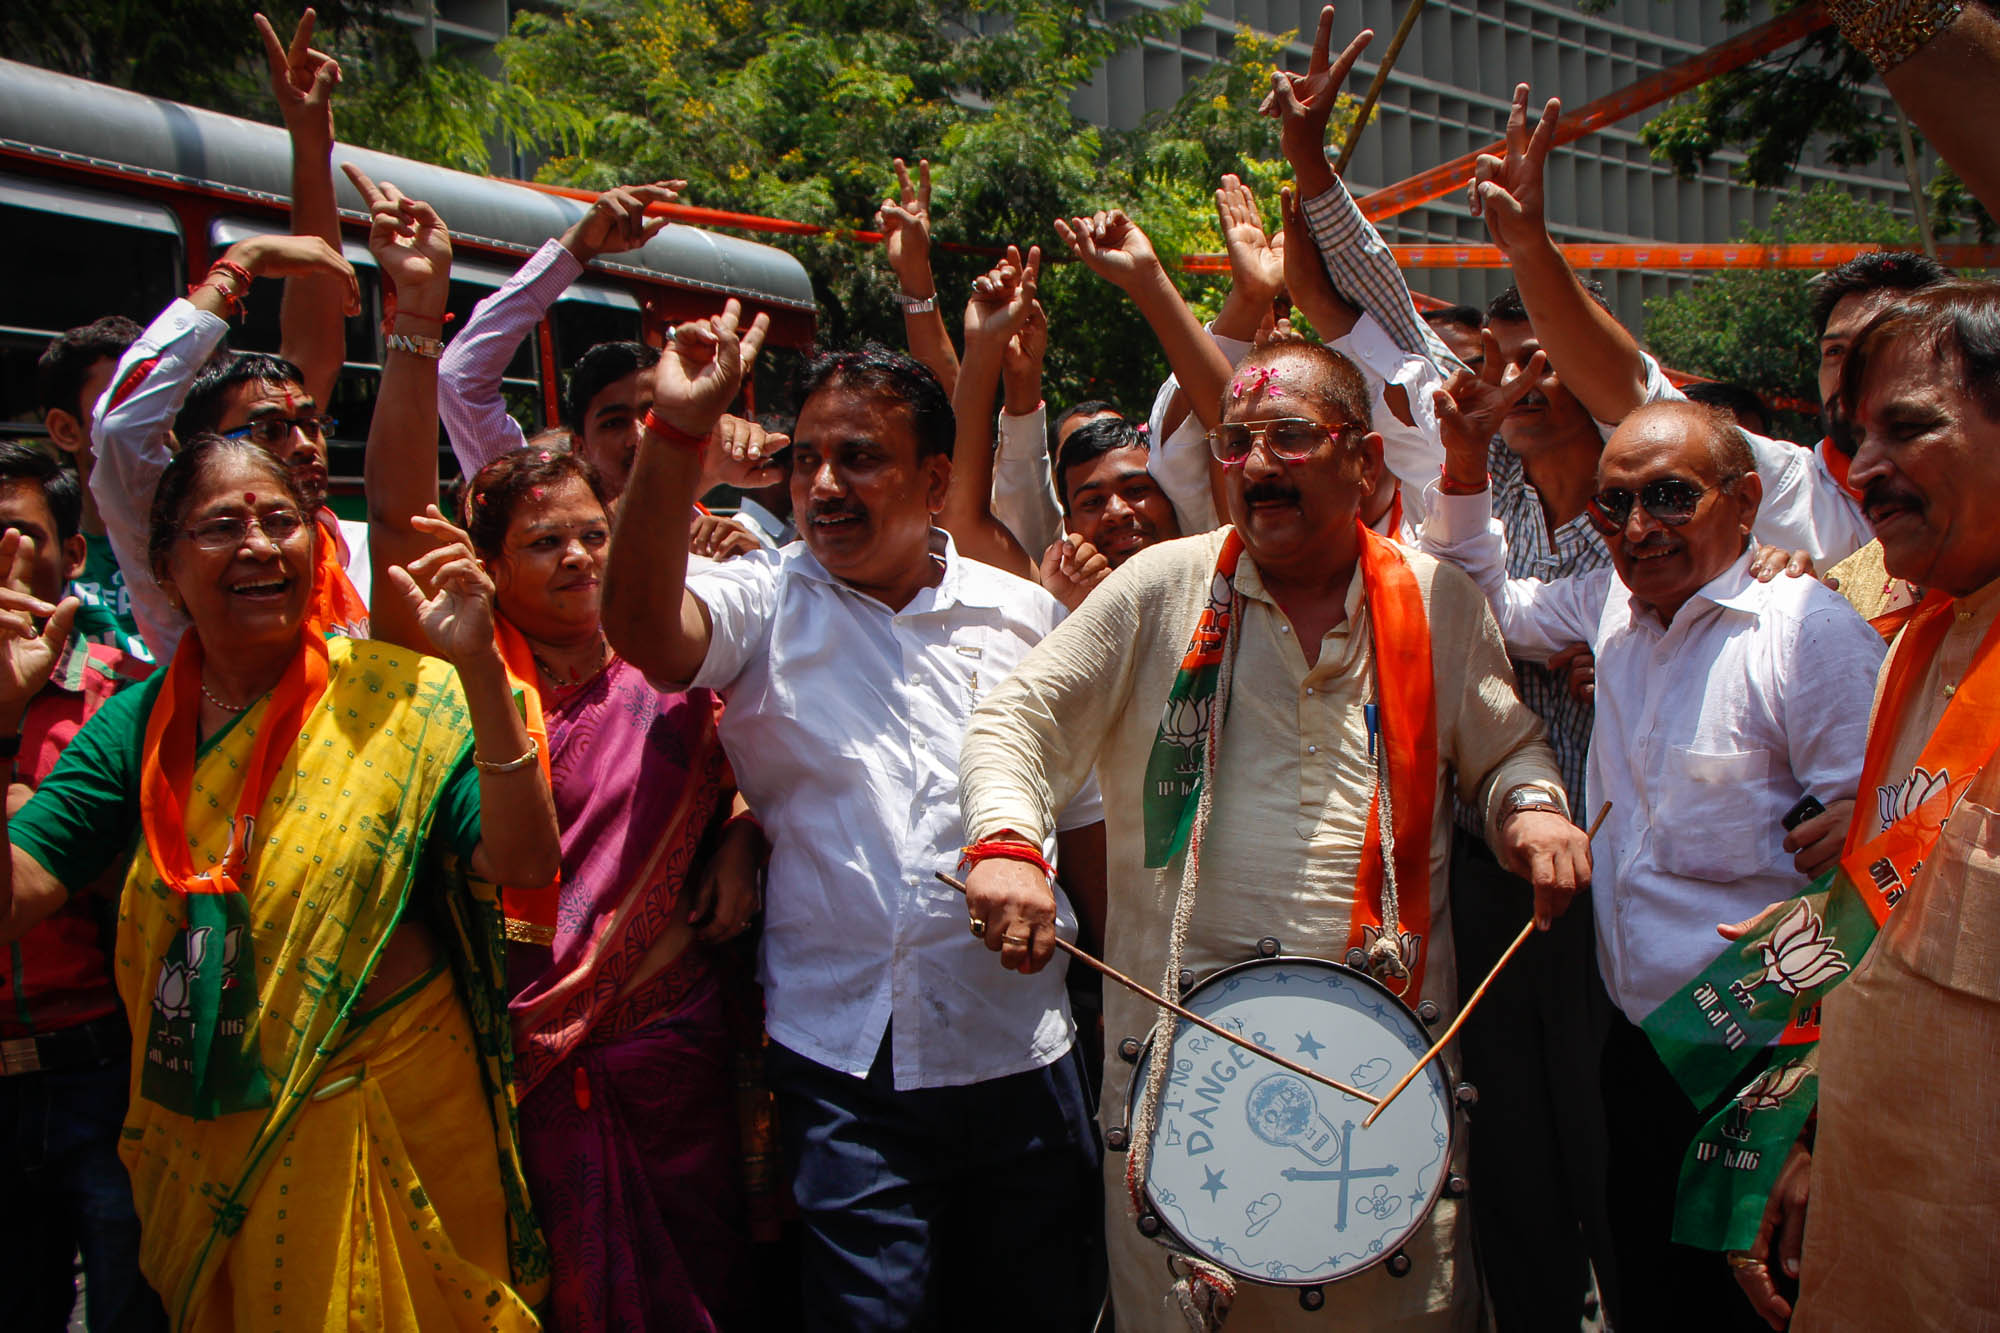 '   Bharatiya Janata Party supporters celebrate outside the BJP office in Mumbai on 16th May 2014 after the party is set to win 281 seats on its own, nine more than the majority mark - which means that it could have formed government even without its pre-poll allies.   Sumedh Sawant / Indus Images'